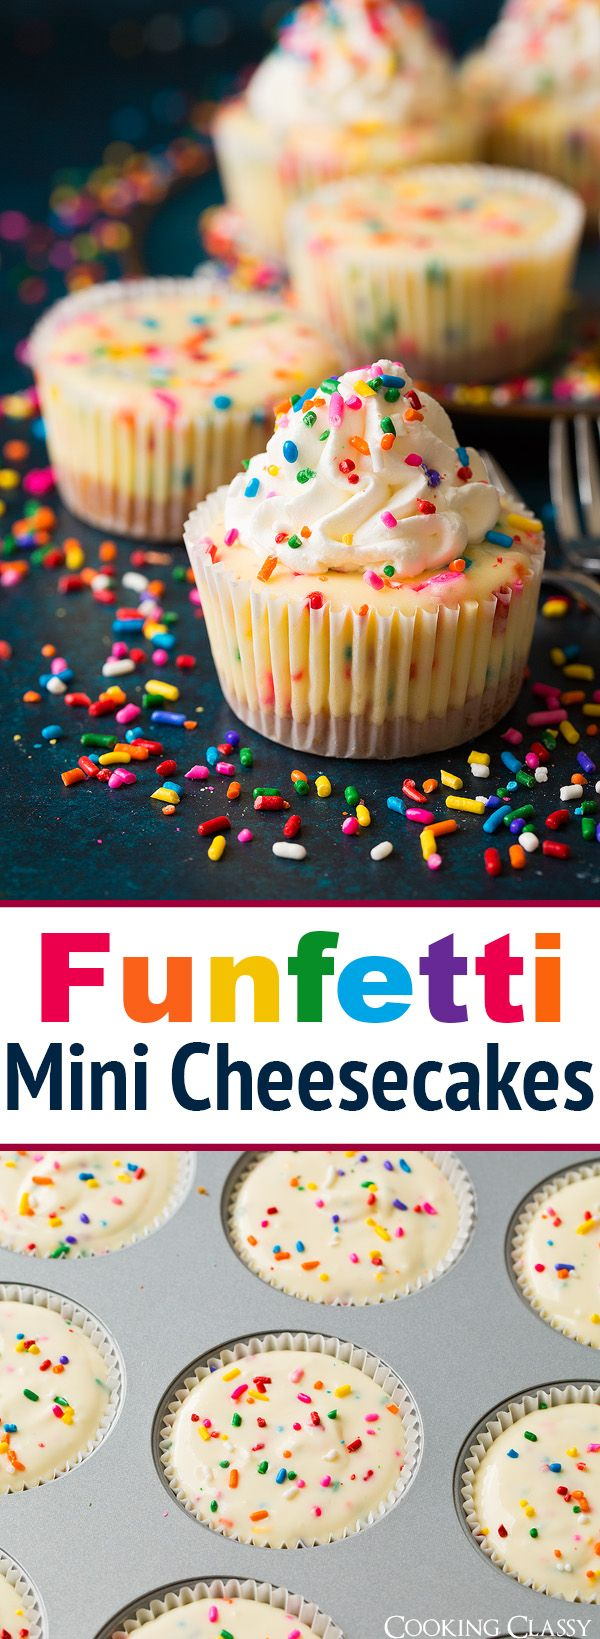 Funfetti Mini Cheesecakes – these are seriously delicious! Taste just like funfetti cake + the goodness of cheesecake.